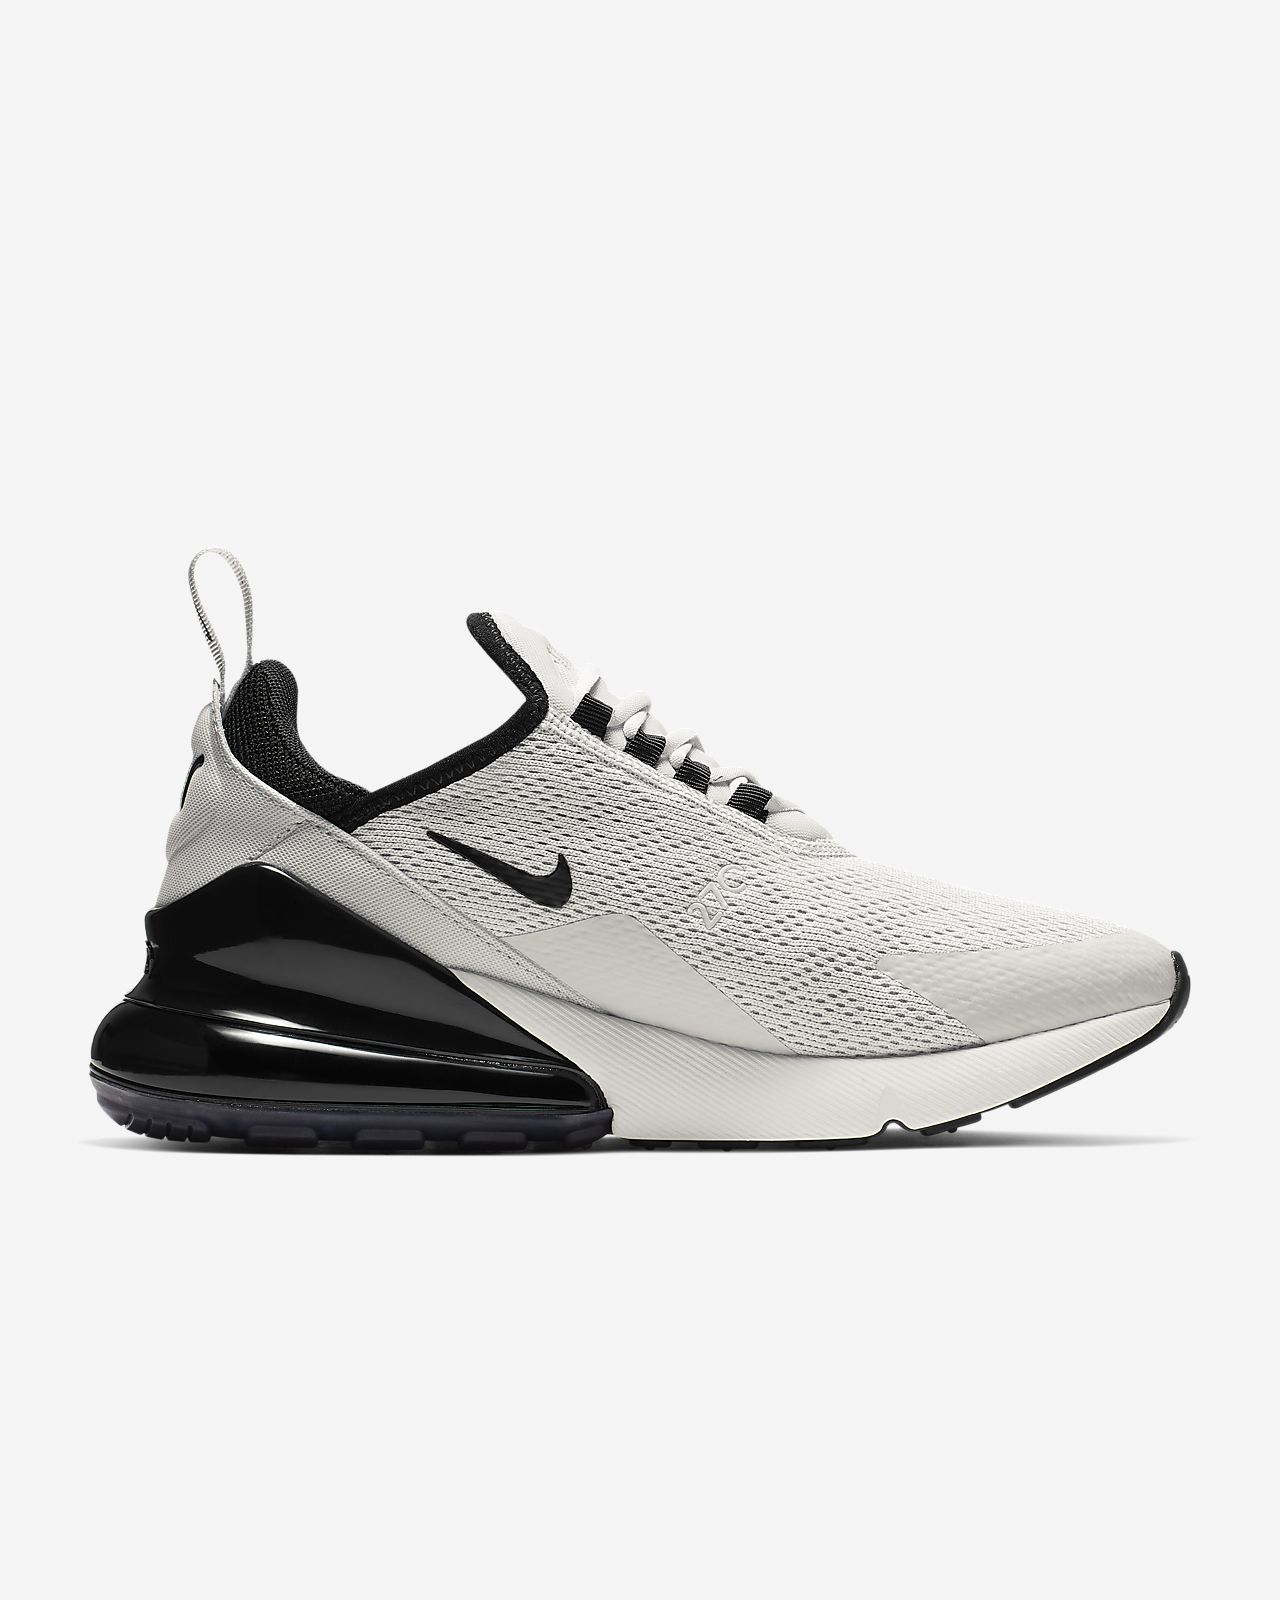 4d2a8664 Low Resolution Nike Air Max 270 Women's Shoe Nike Air Max 270 Women's Shoe